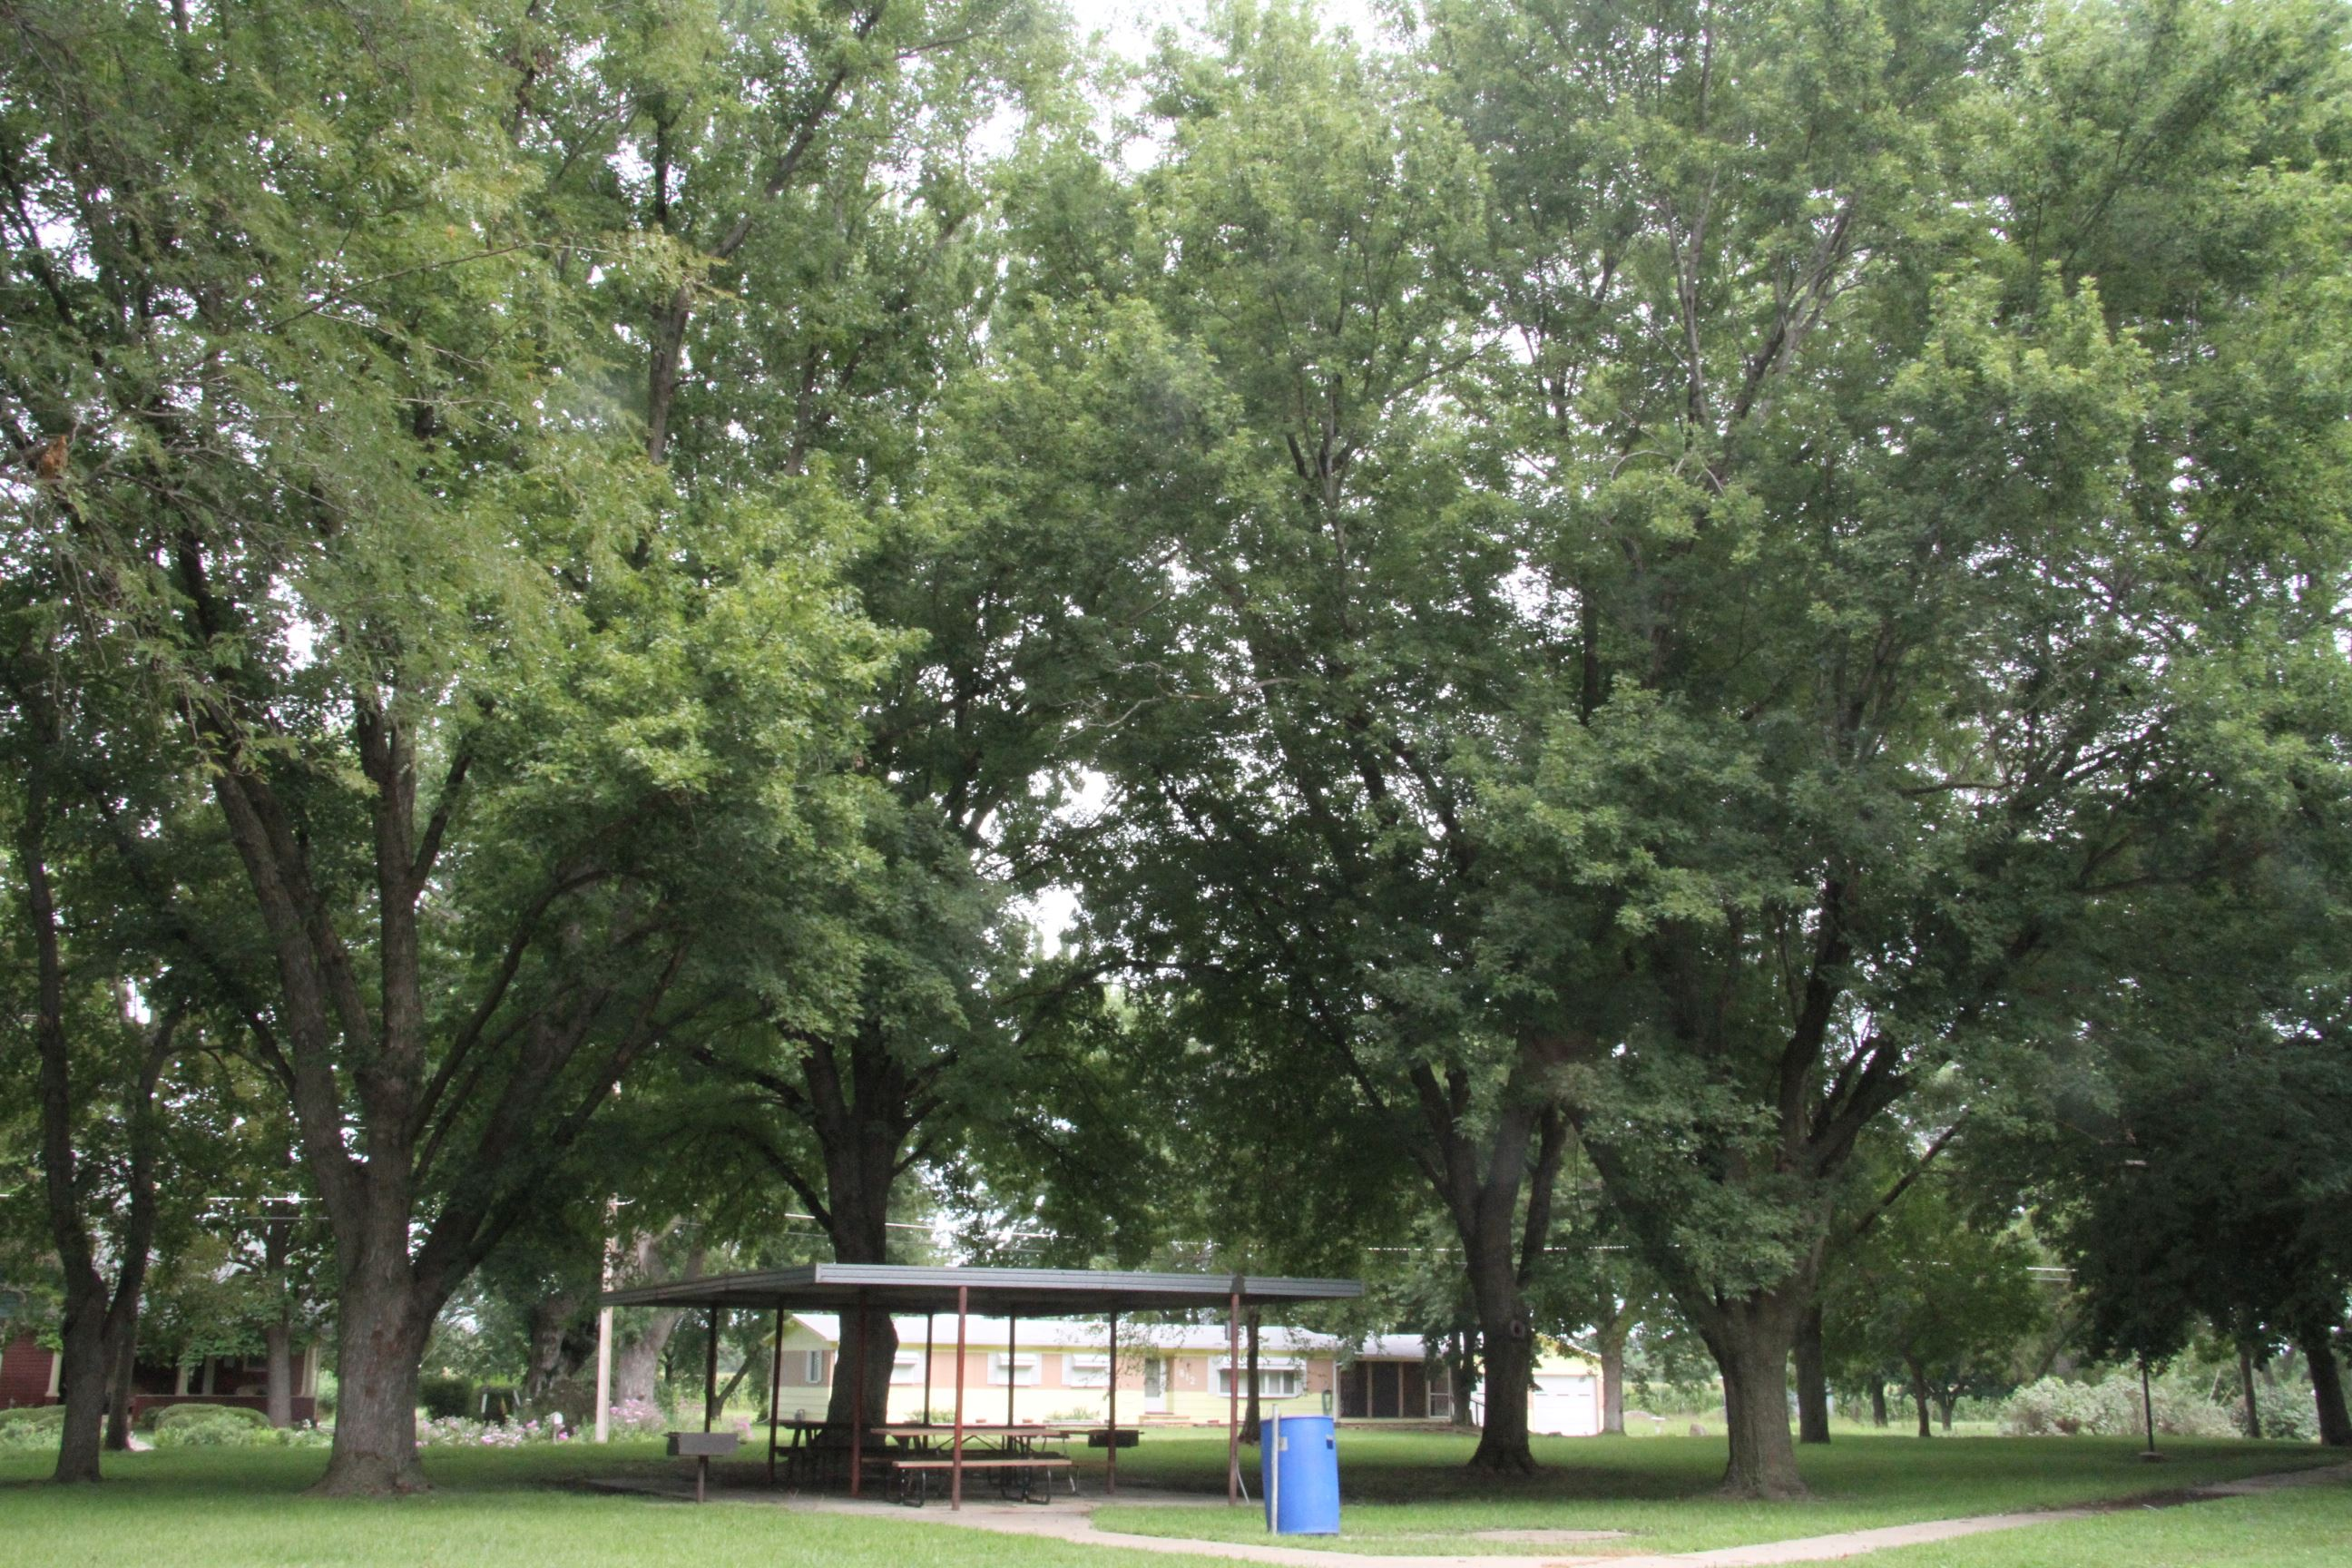 Picnic Shelter with Trees in Willard Park